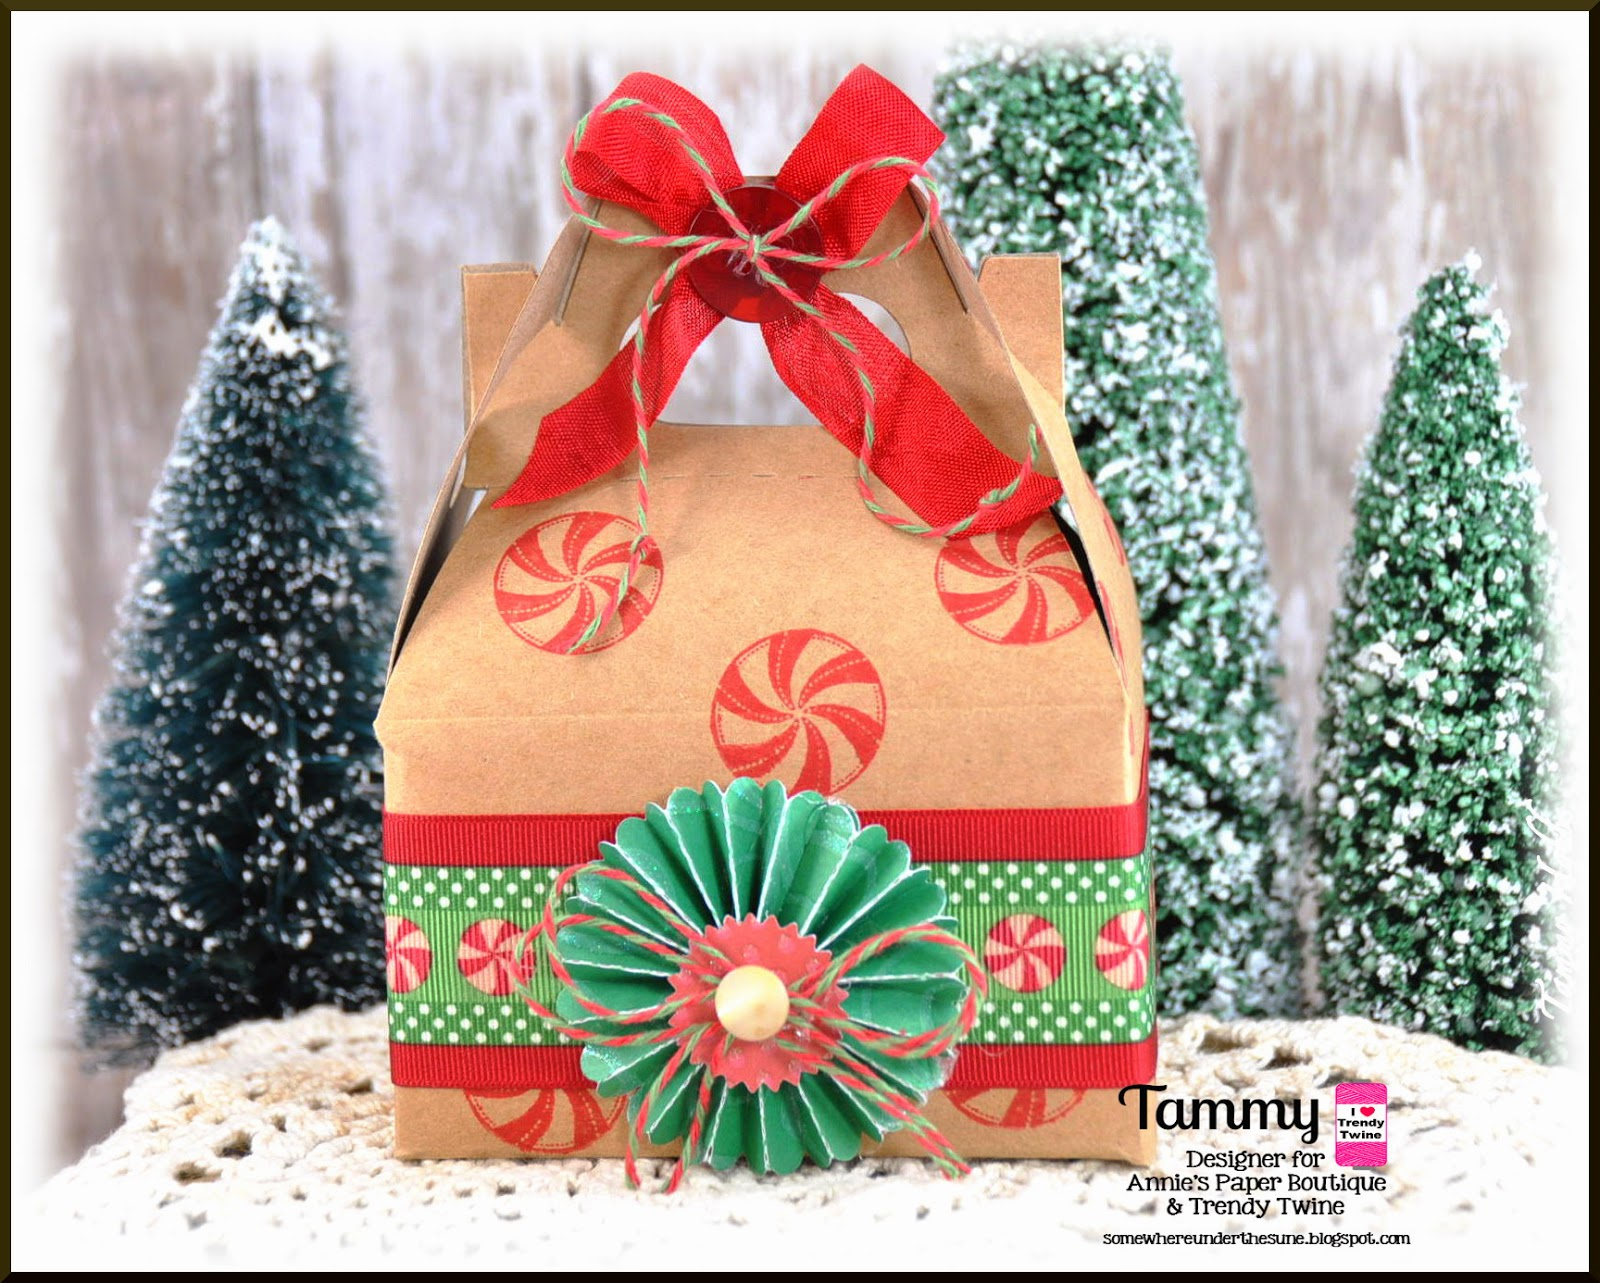 Twine it up by annie s paper boutique trendy